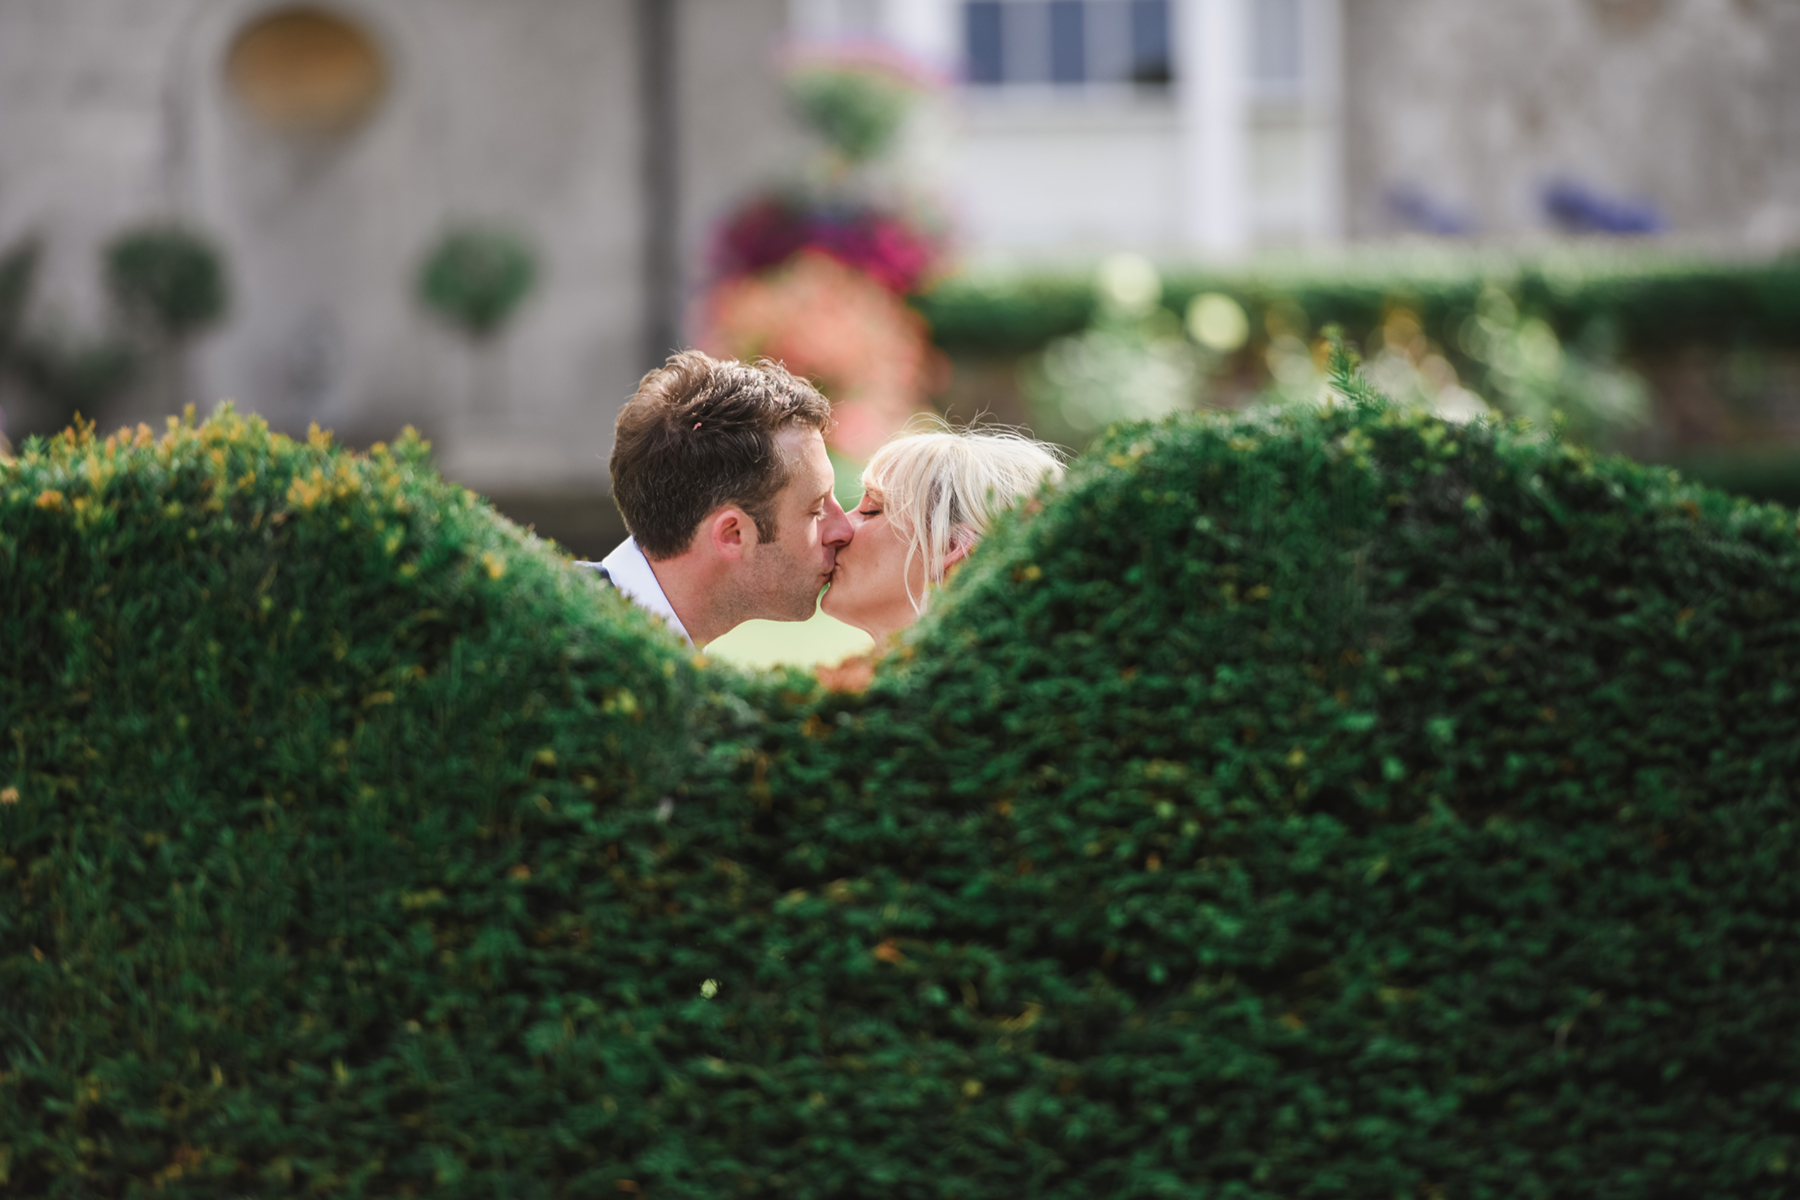 sussex wedding photographer zest photographs bride kissing groom behind a hedge